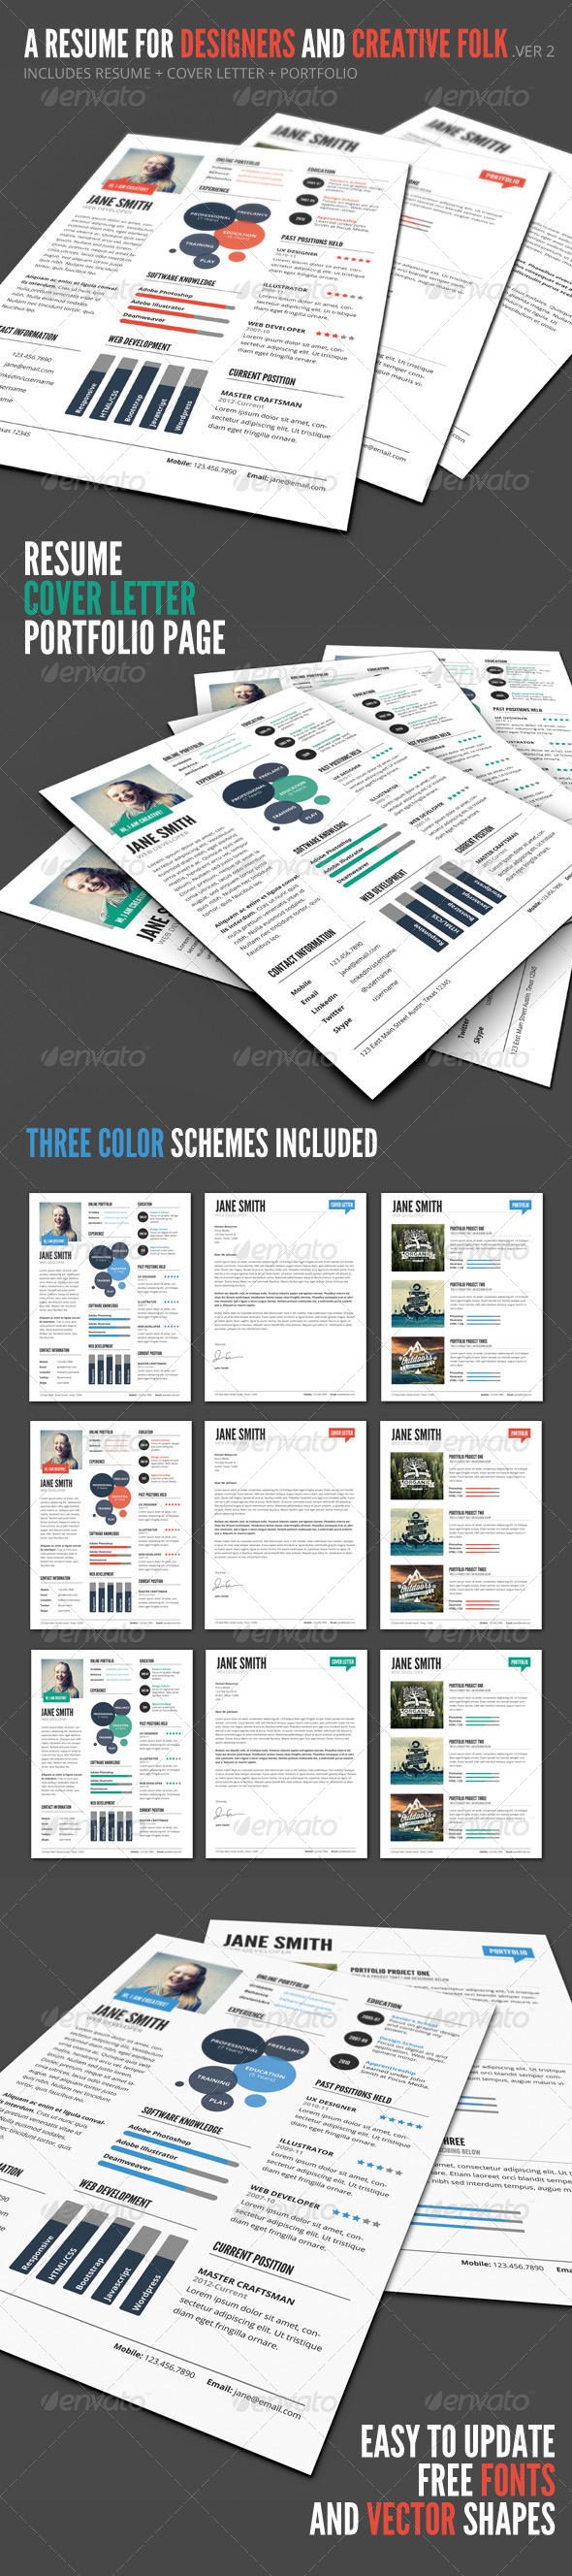 InfoGraphic Style Resume Template - Ver 2